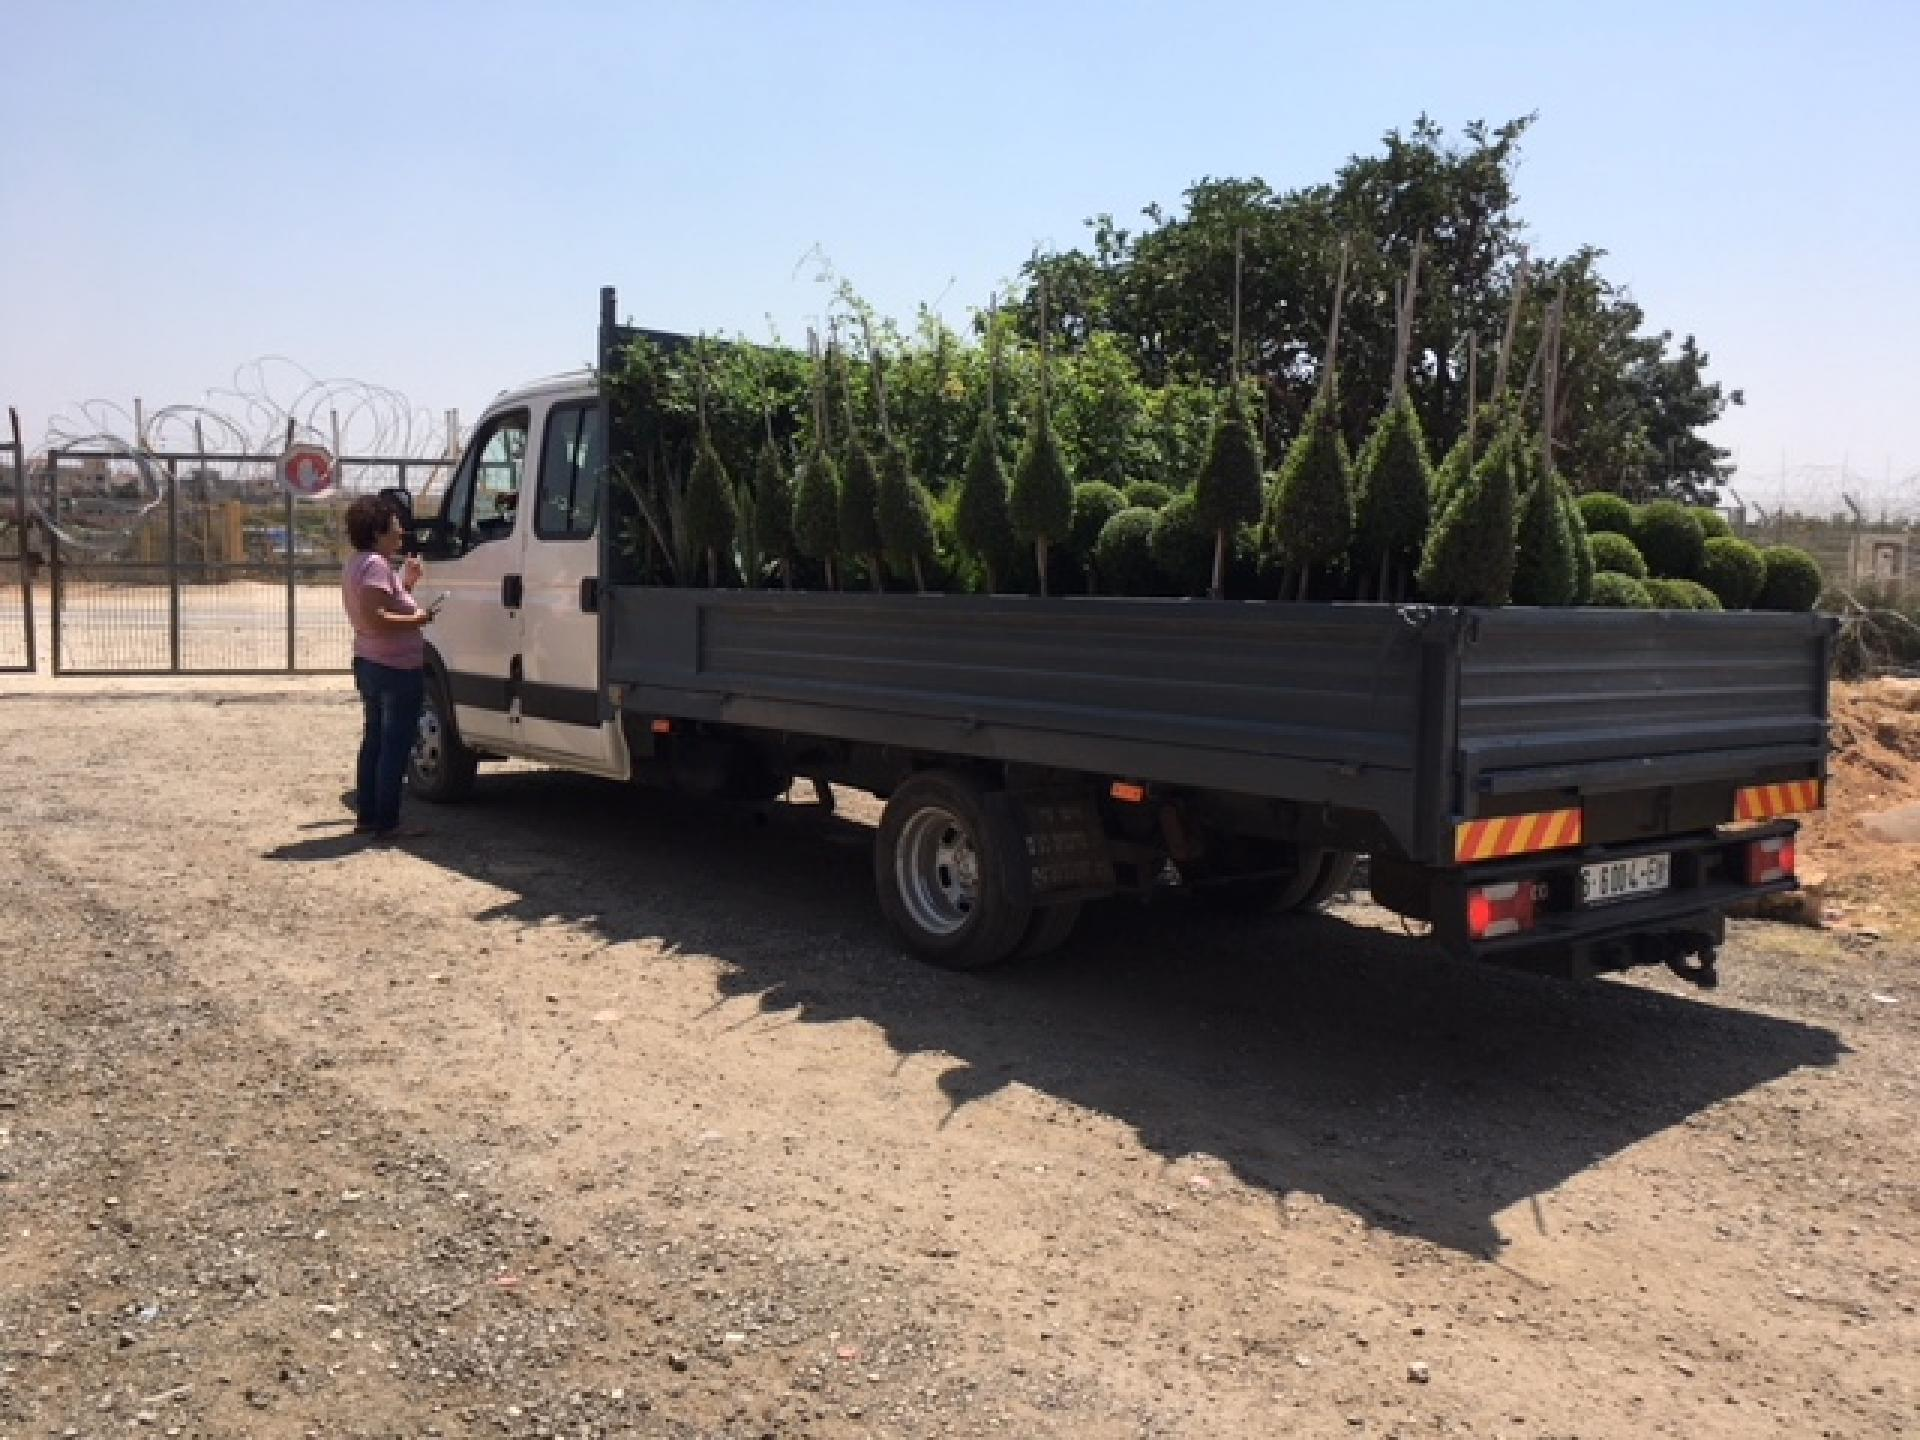 Micky speaking with the driver who's bringing plants to Habla